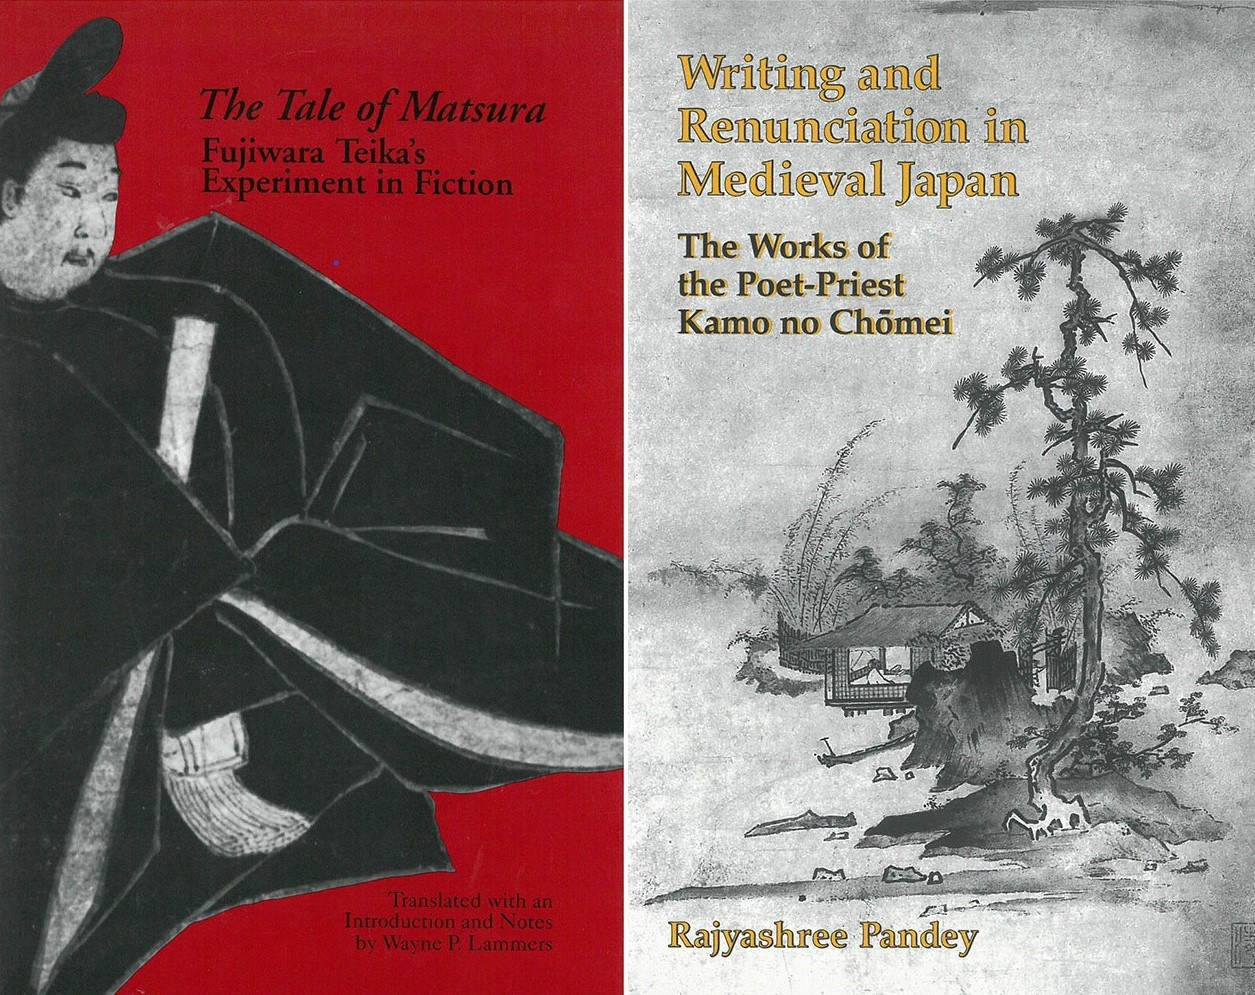 The Tale of Matsura, translated by Wayne Lammers, and Writing and Renunciation in Medieval Japan, by Rajyashree Pandey